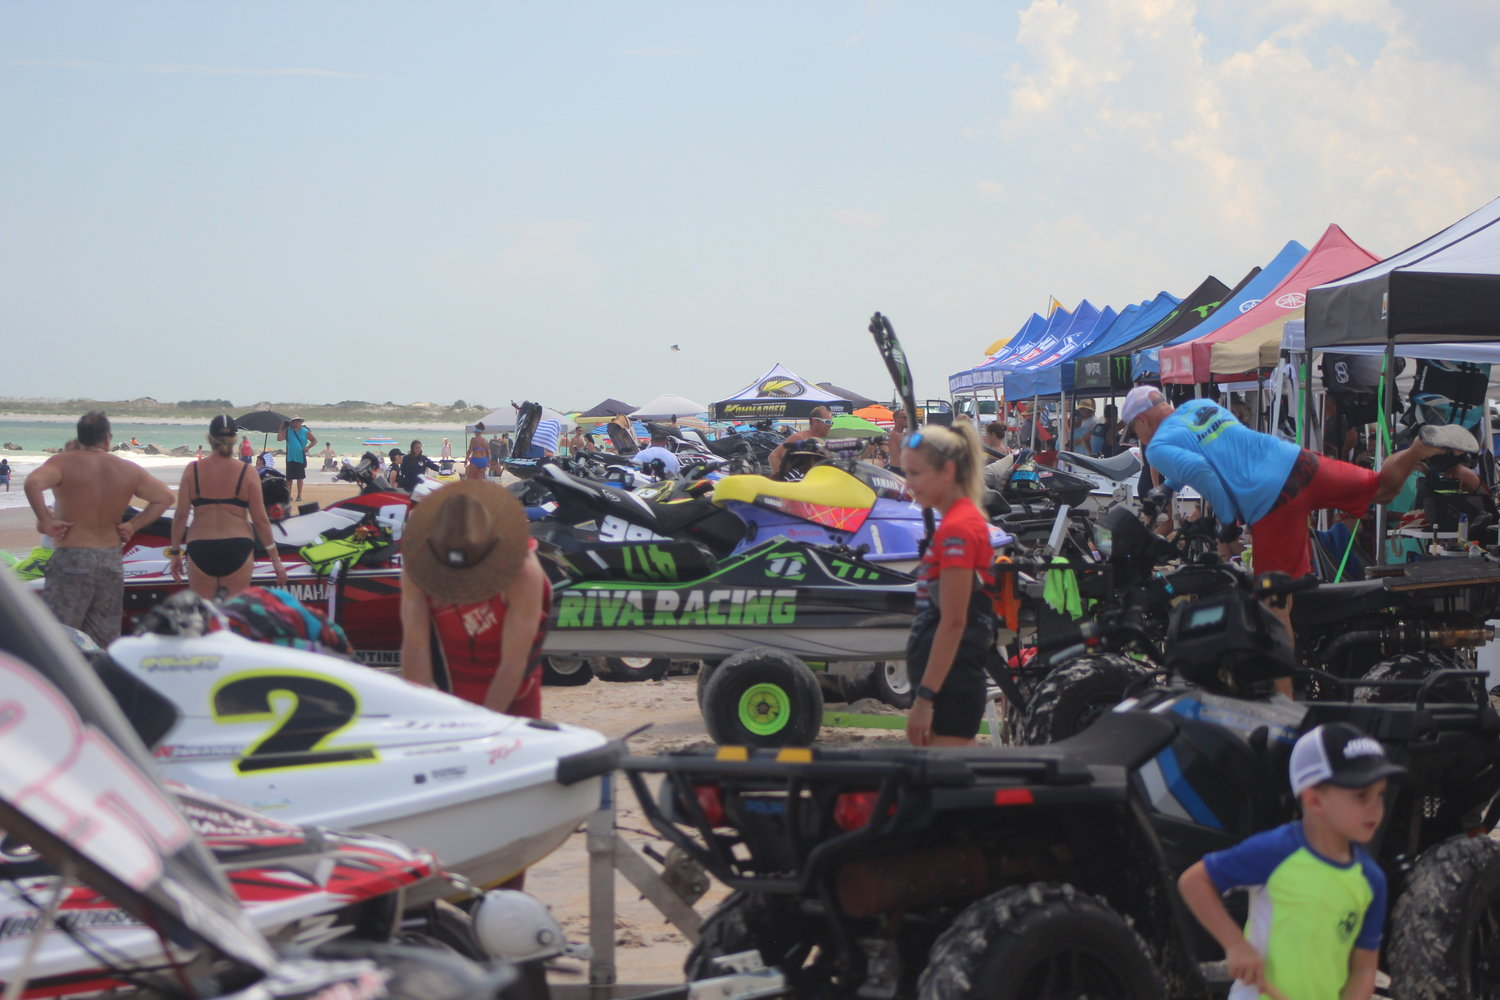 The LiquiMoly ProWatercross National Tour event was held last weekend at Vilano Beach.